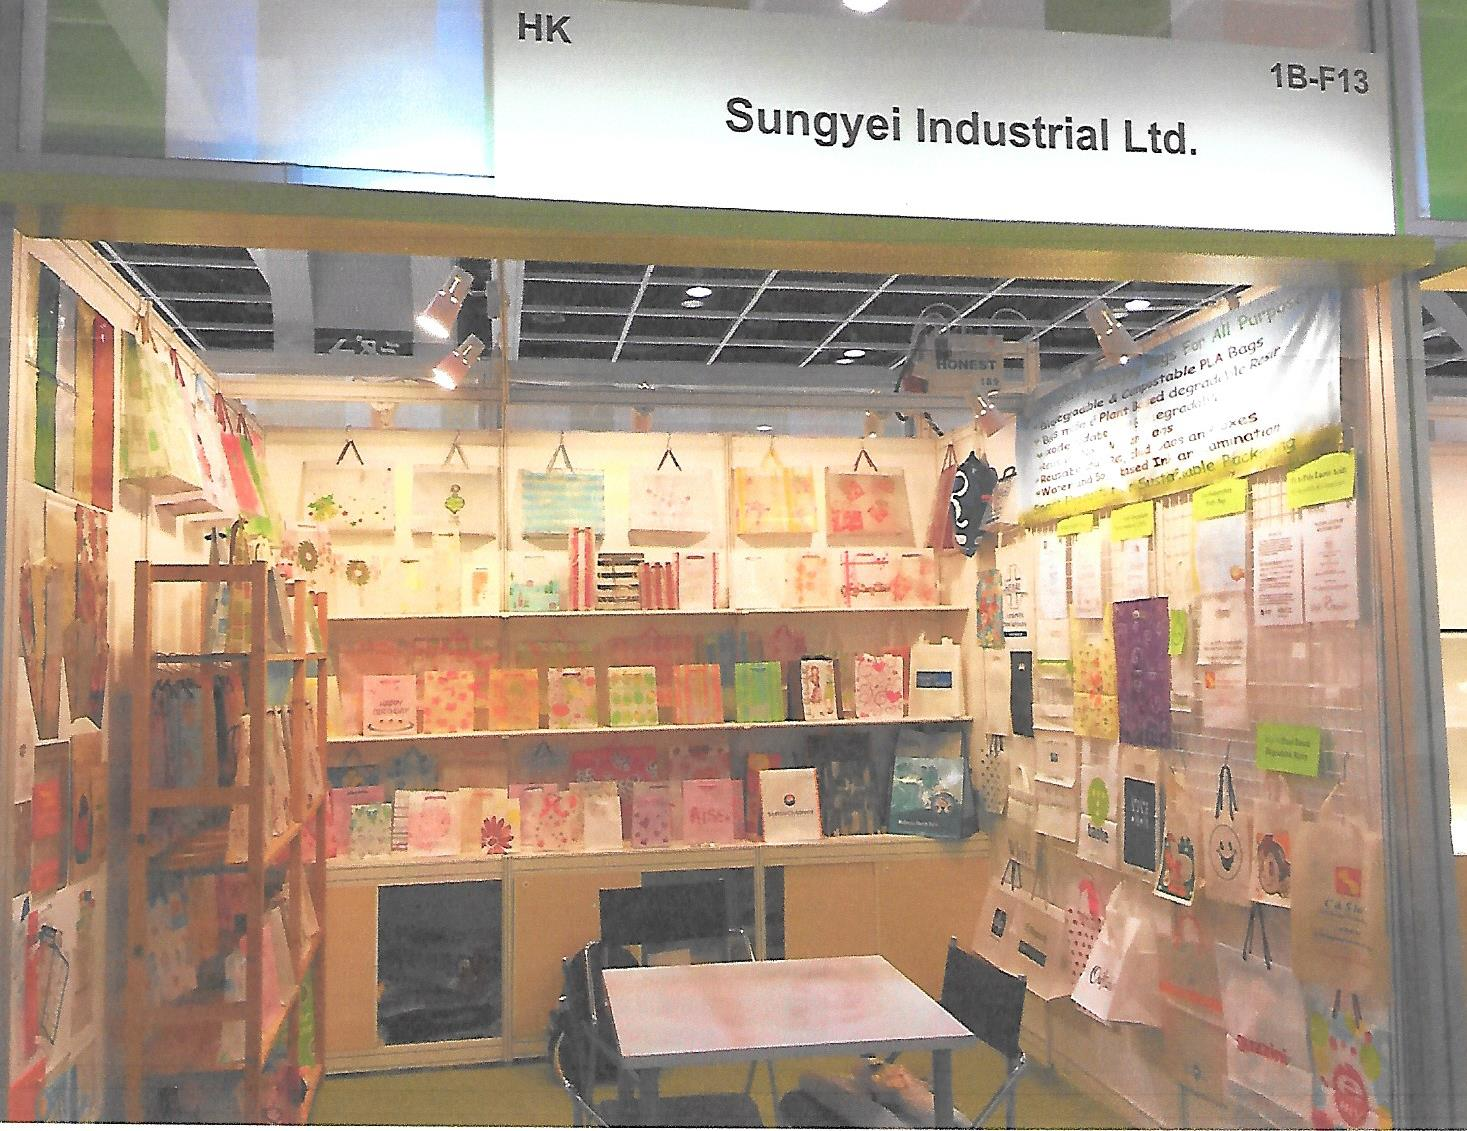 Hong Kong Int'l Printing & Packaging Fair